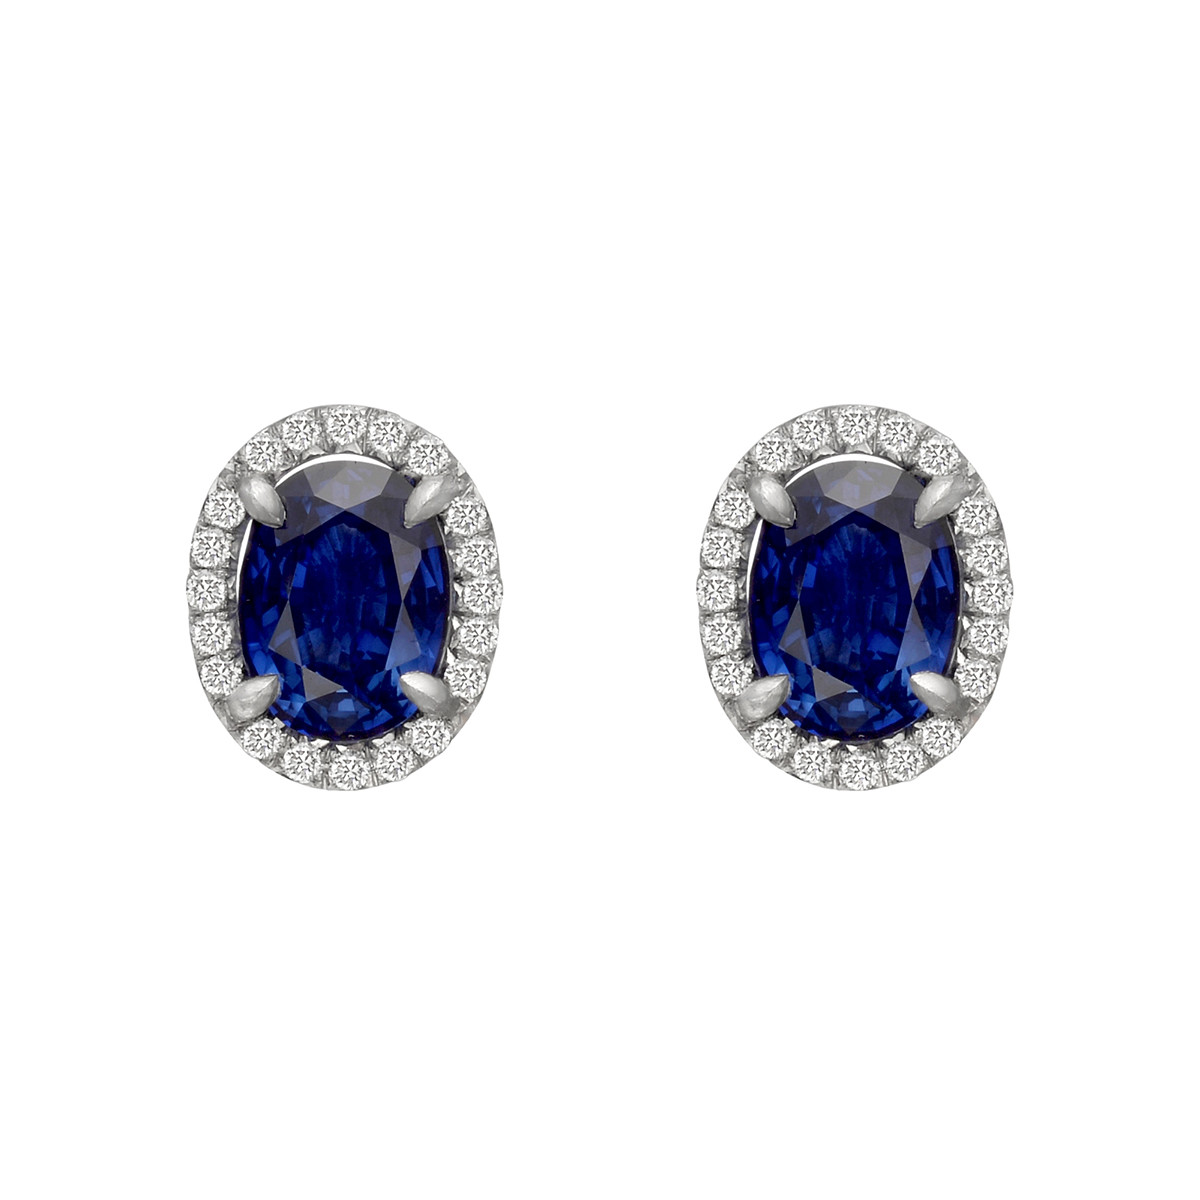 Oval Sapphire & Diamond Stud Earrings